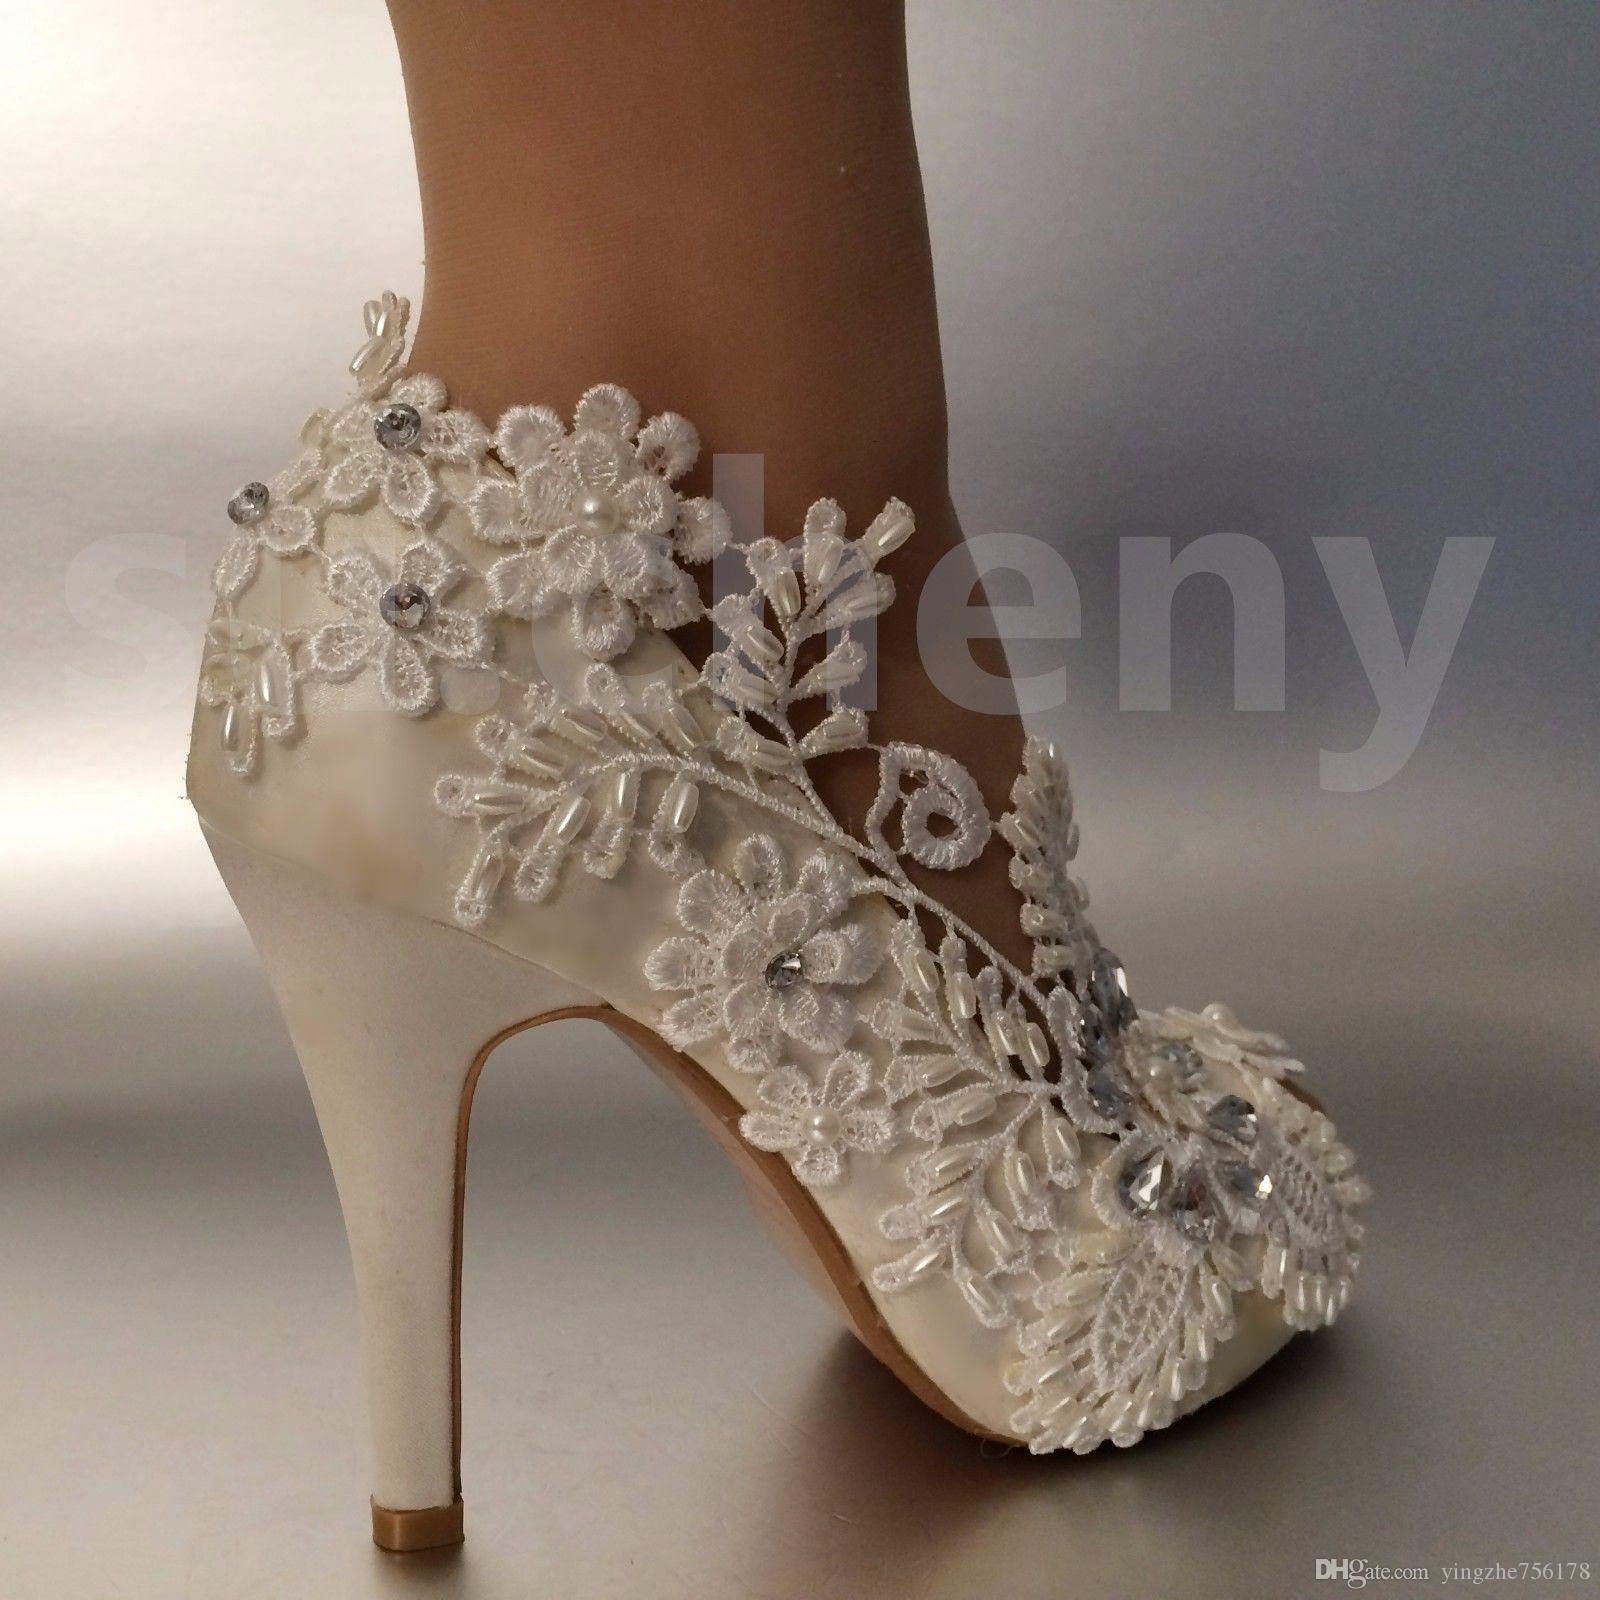 5249564df0a Wedding Shoes Waterproof Ivory Bride Wedding Dresses Diamond Lace Pearl  Manual Wedding BRIDAL HEEL Open Toe Shoe SIZE EU 35 42 Prom Shoes Cheap  Prom Shoes ...